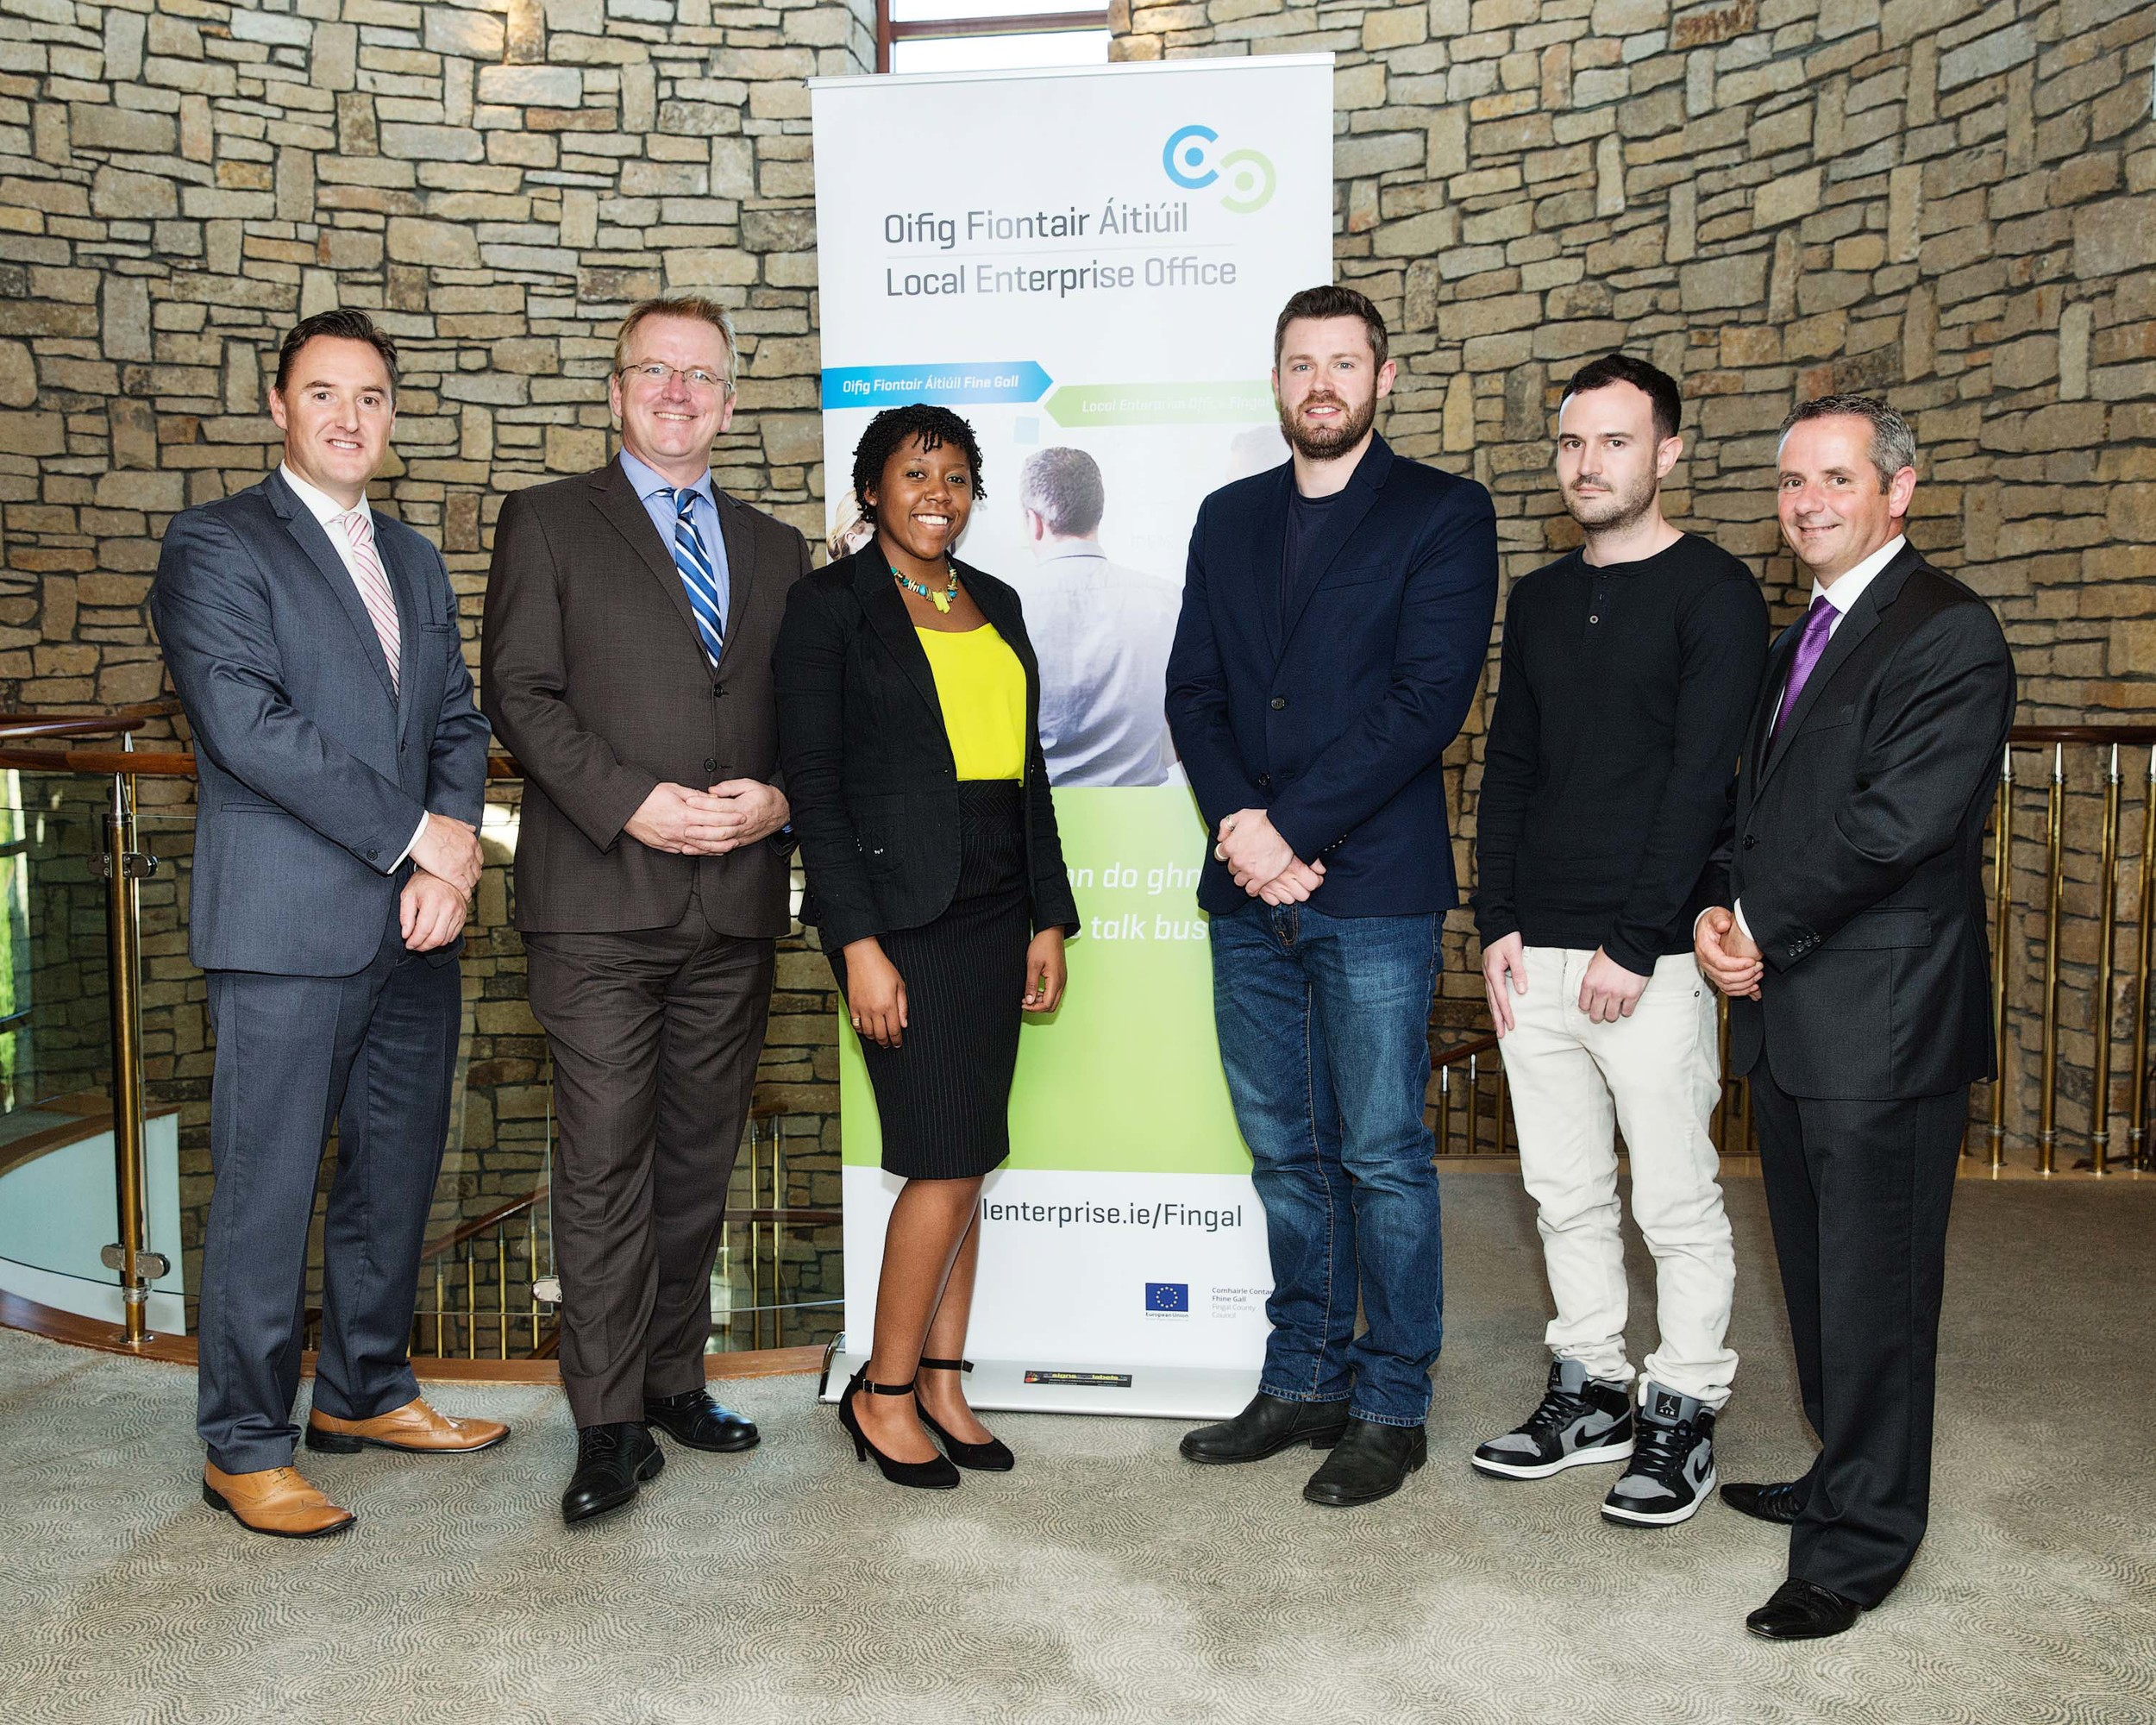 Keith Brock (Fingal Local Enterprise Office), Oisin Geoghegan (Head of Fingal Local Enterprise Office), Claudia Samantha Devereaux (IBYE Finalist), John Havel (IBYE Finalist), Mark Sheils (IBYE Finalist) and Paul Reid (Chief Executive, Fingal County Council)